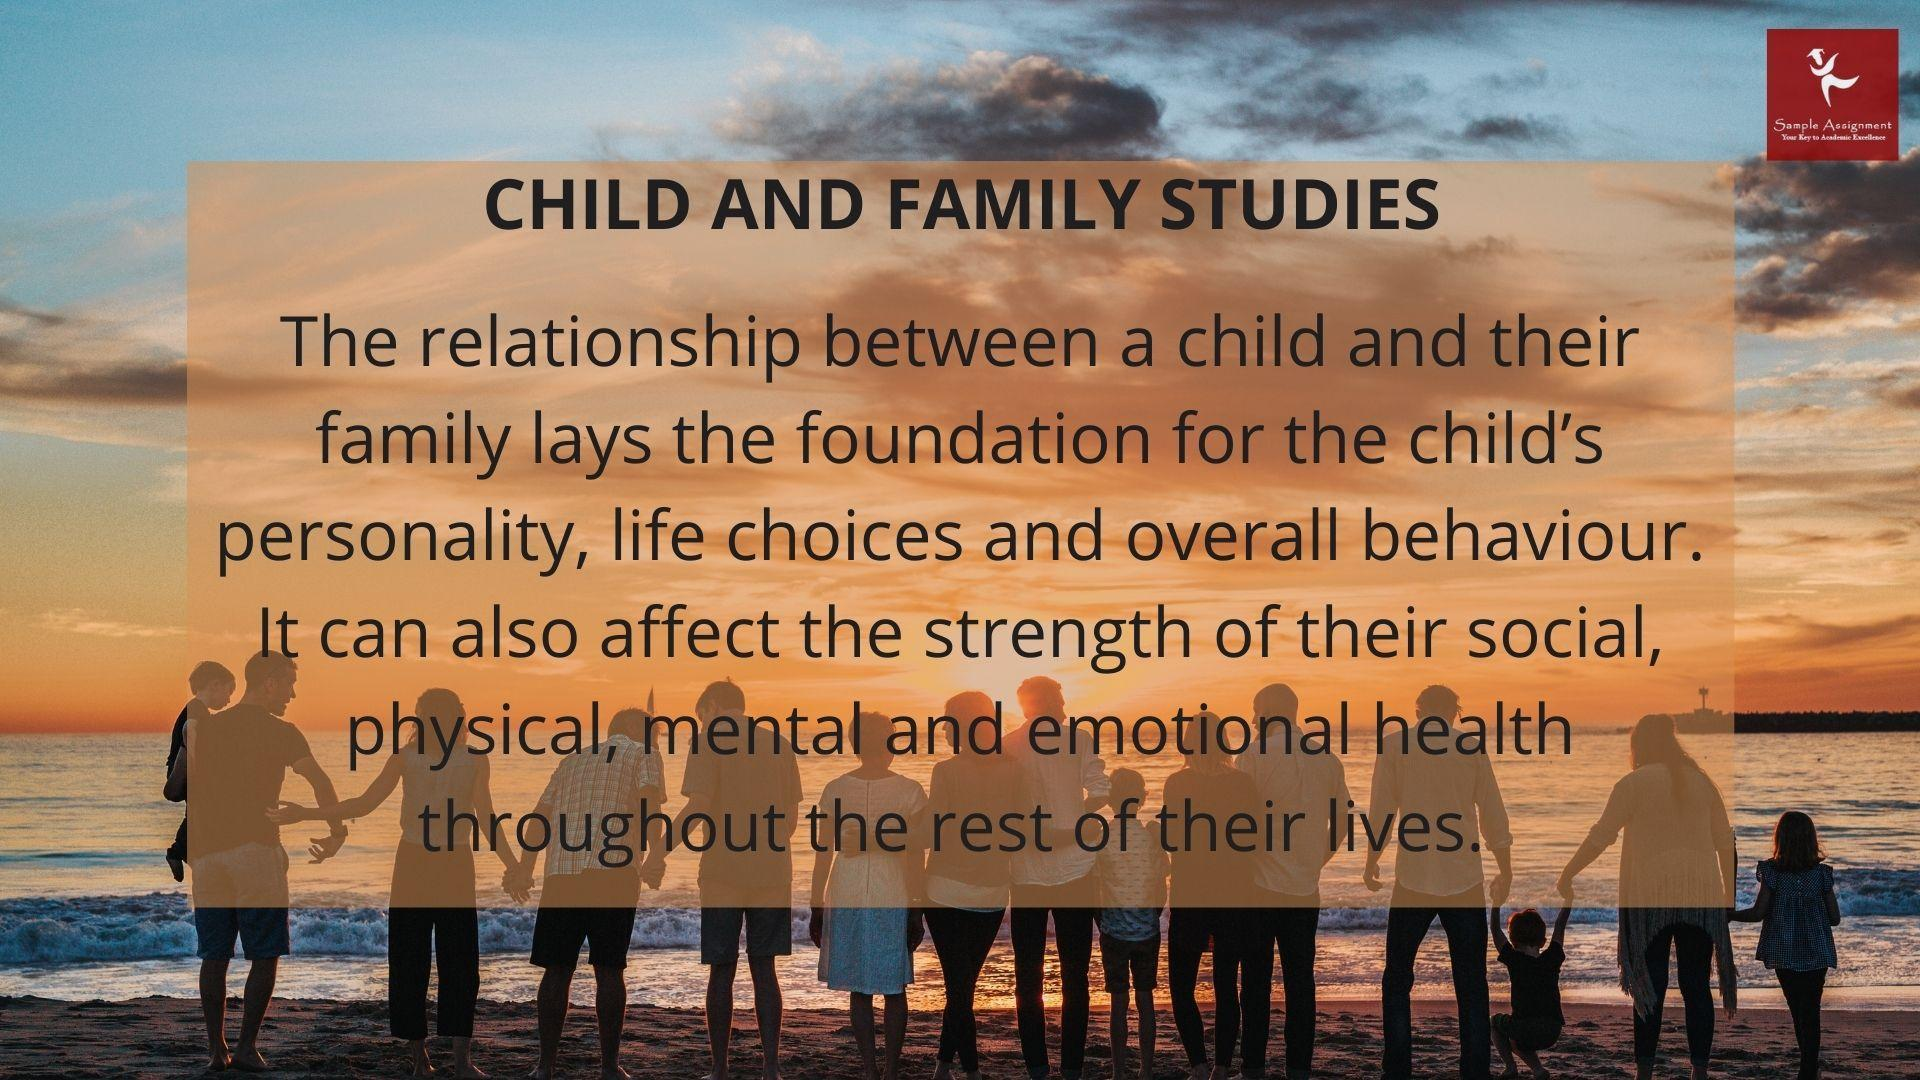 child and family studies academic assistance through online tutoring canada